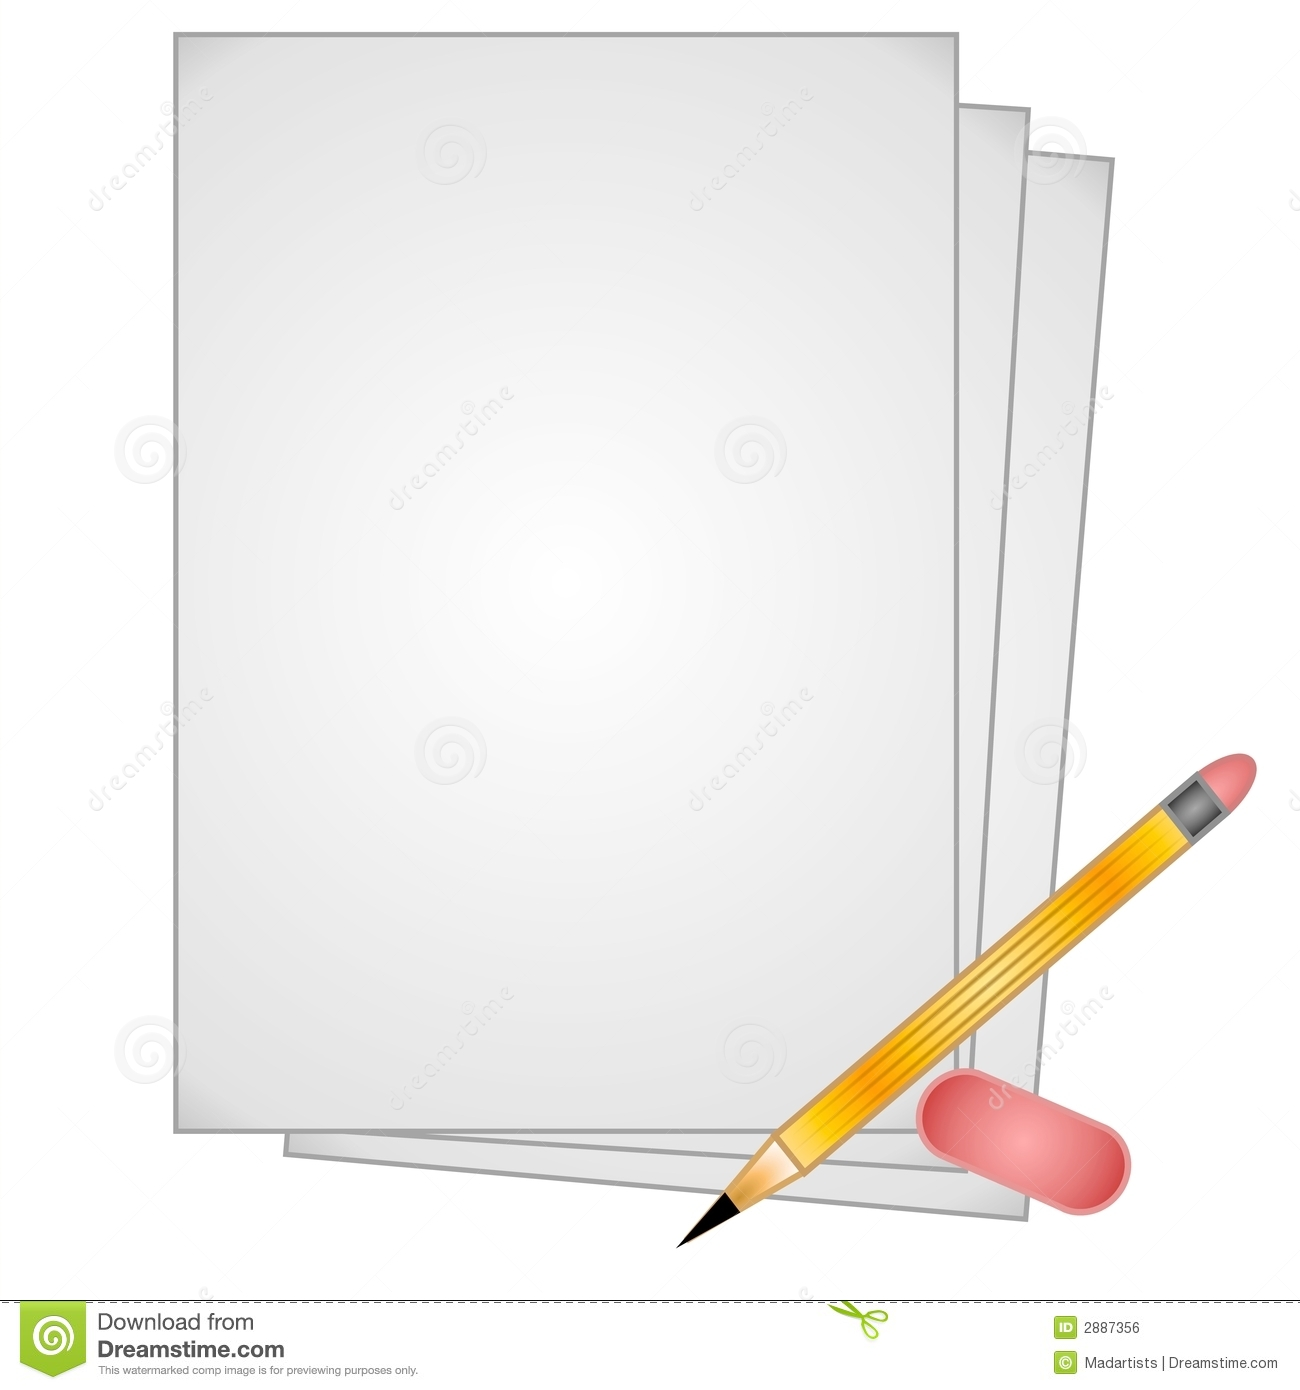 Pencil Paper Eraser Clip Art Royalty Free Stock Image - Image: 2887356